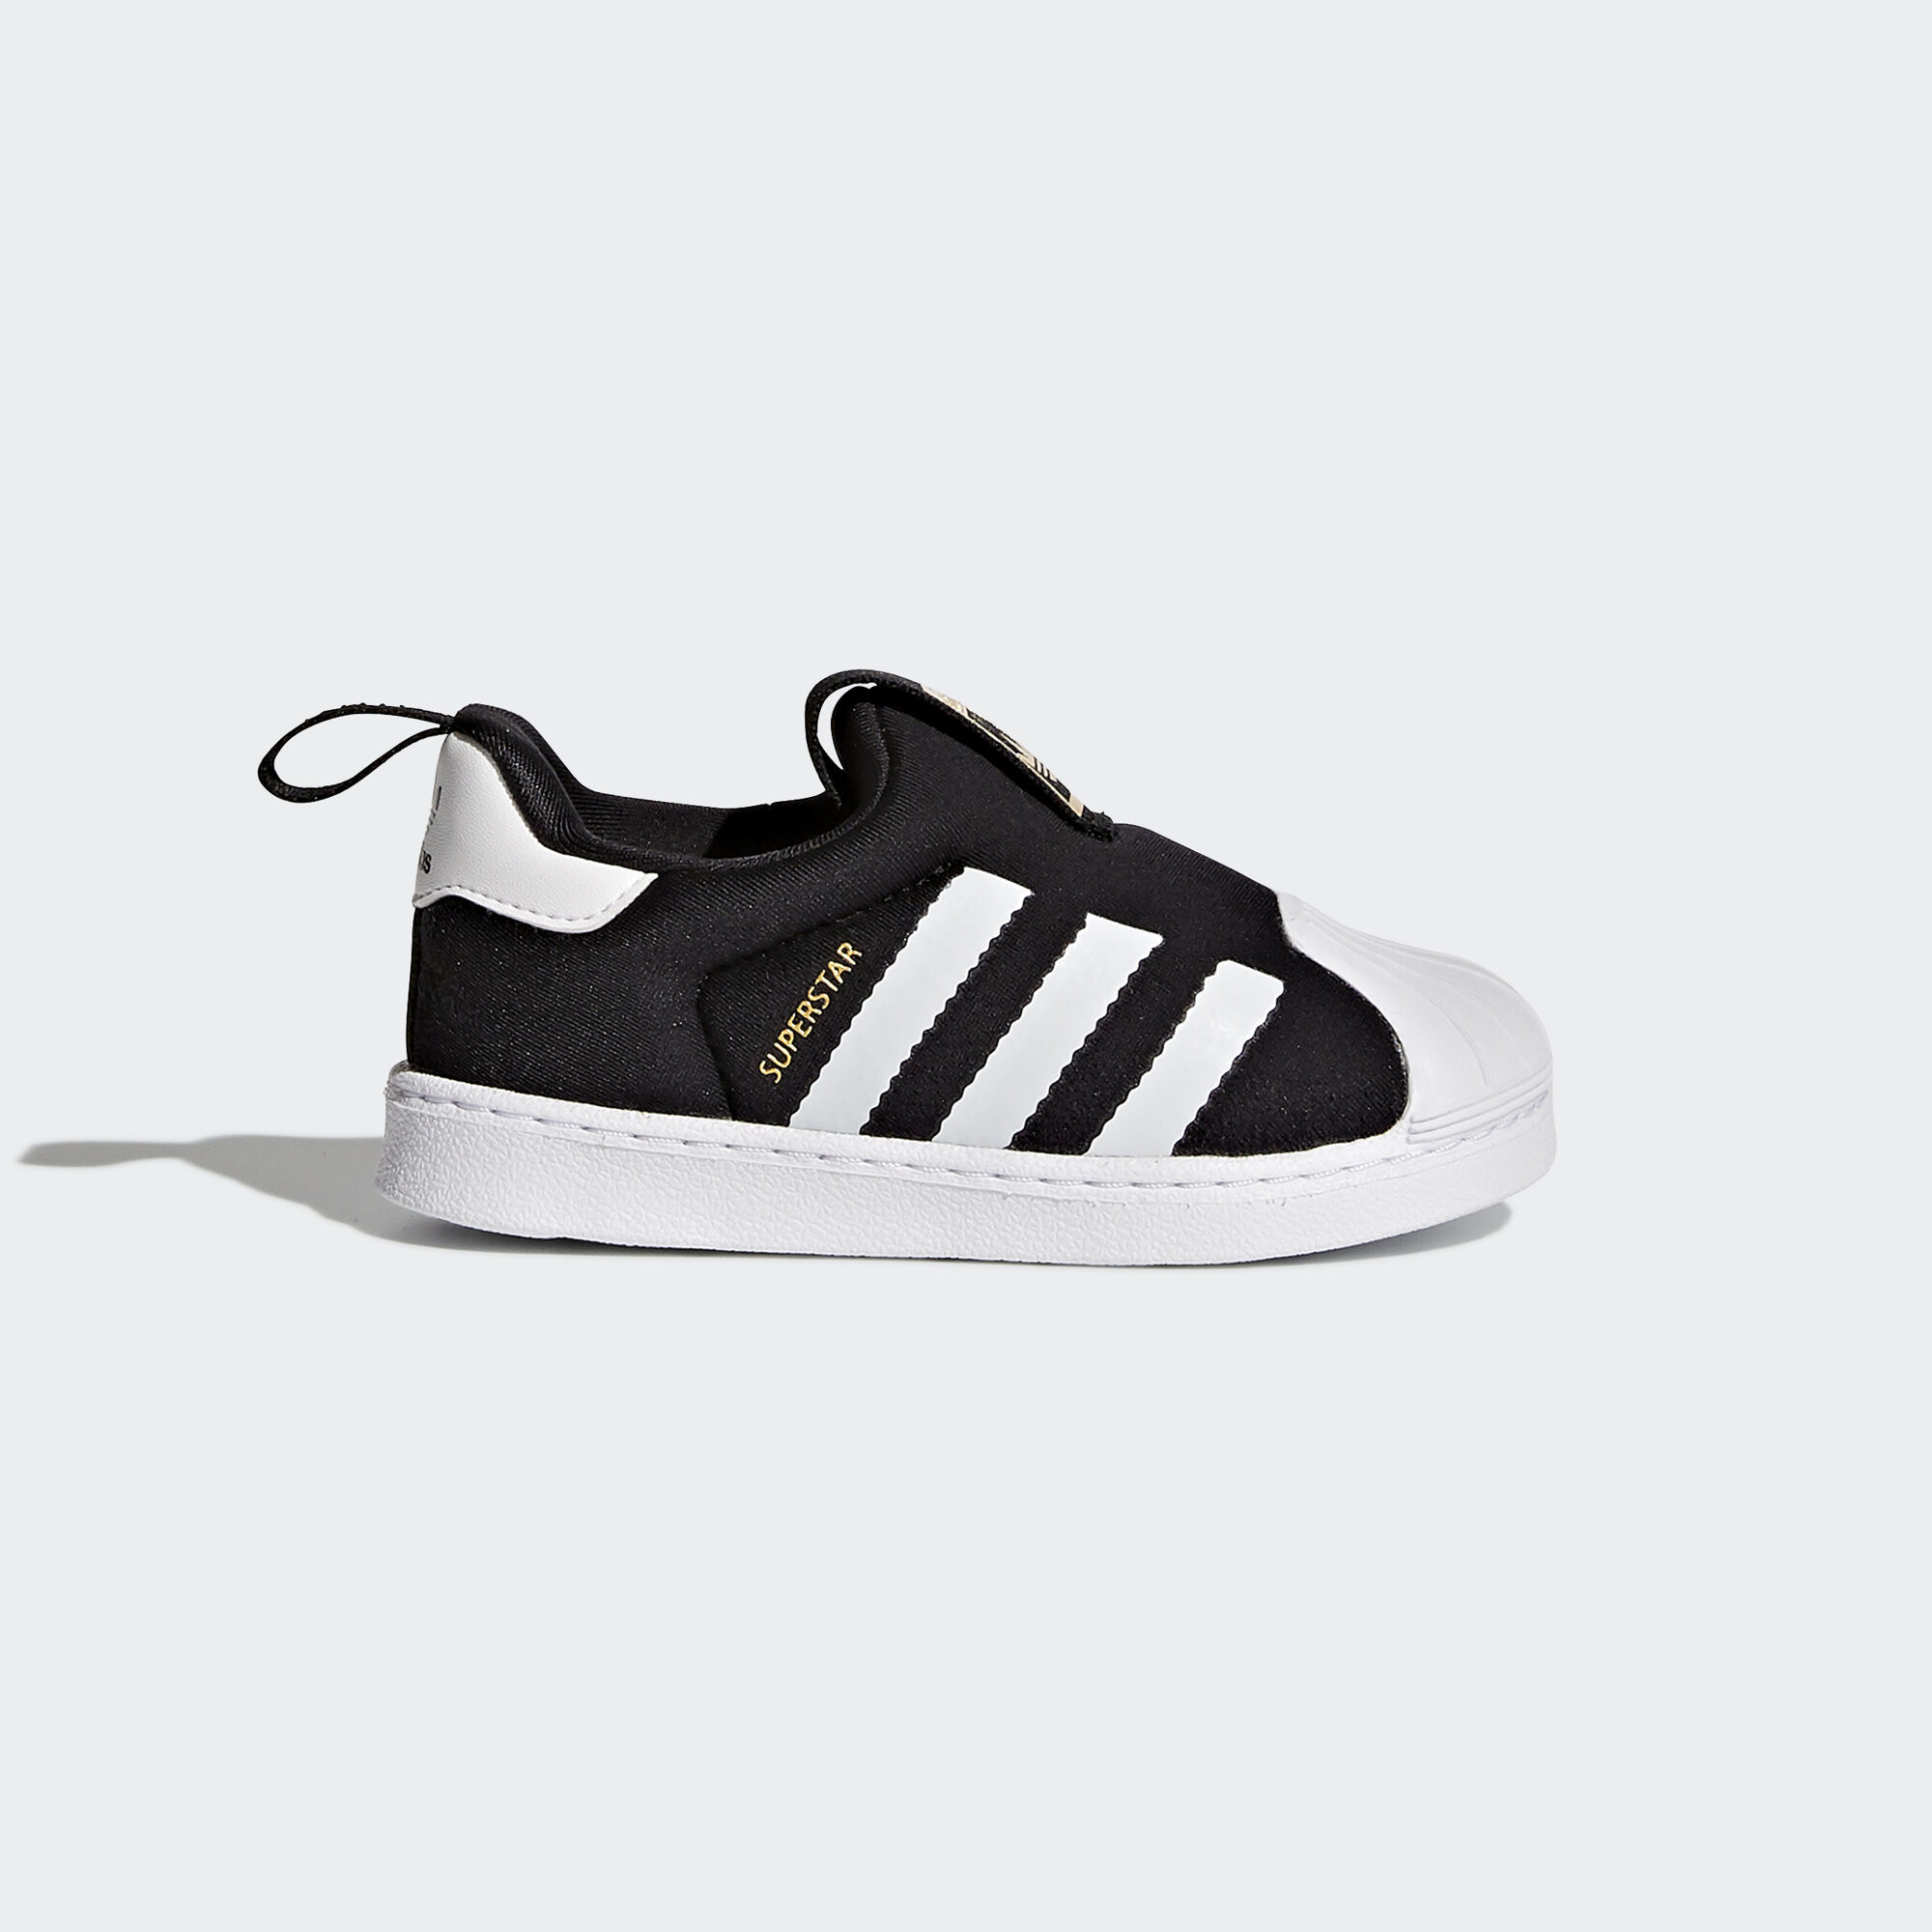 image: adidas superstar [6]